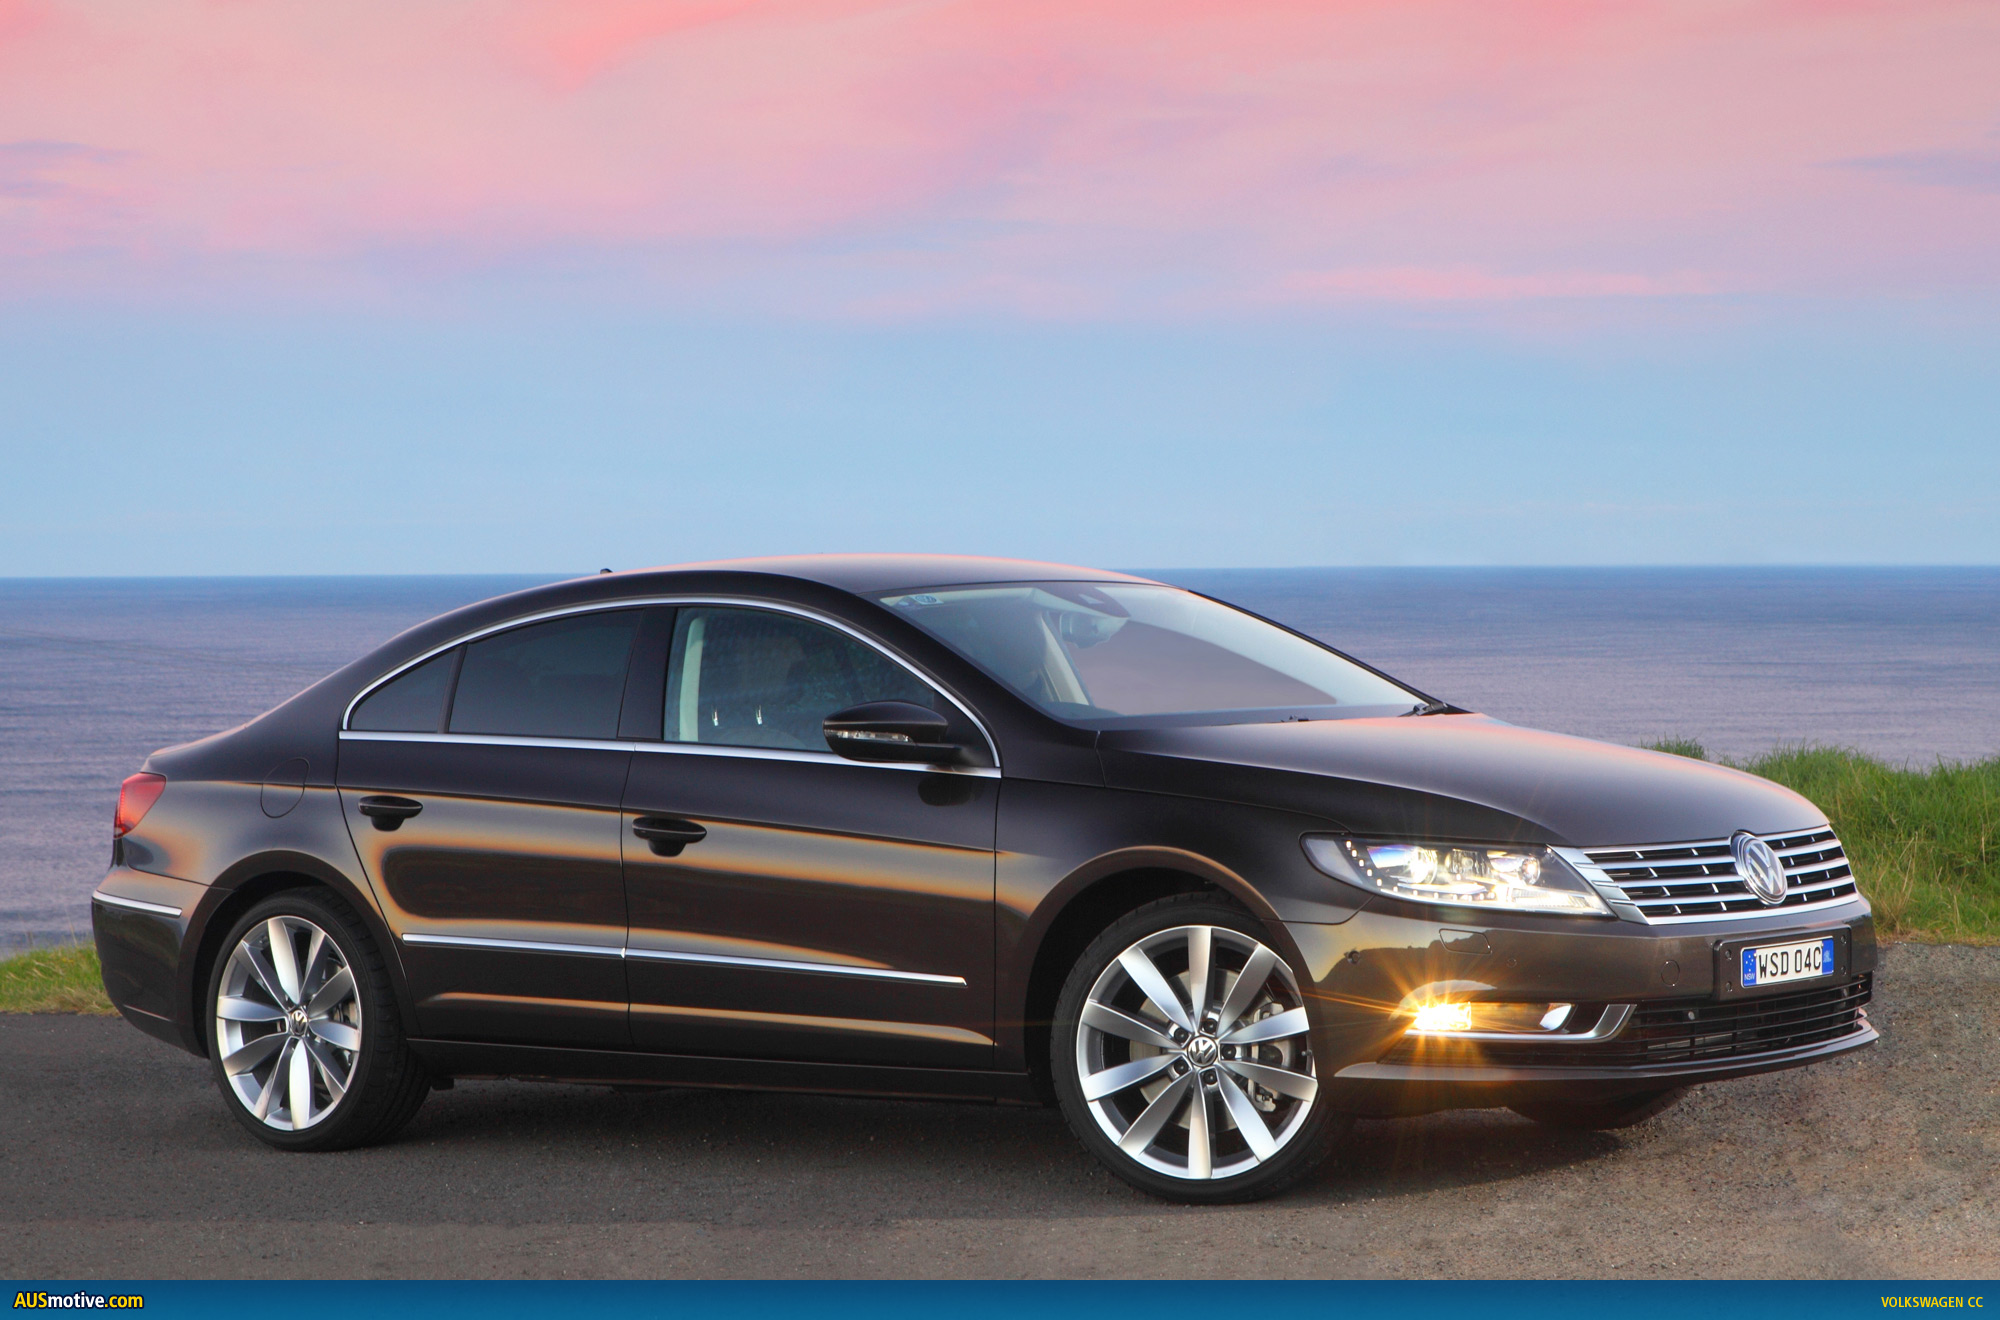 Volkswagen Australia has recently launched the updated CC Free Download Image Of